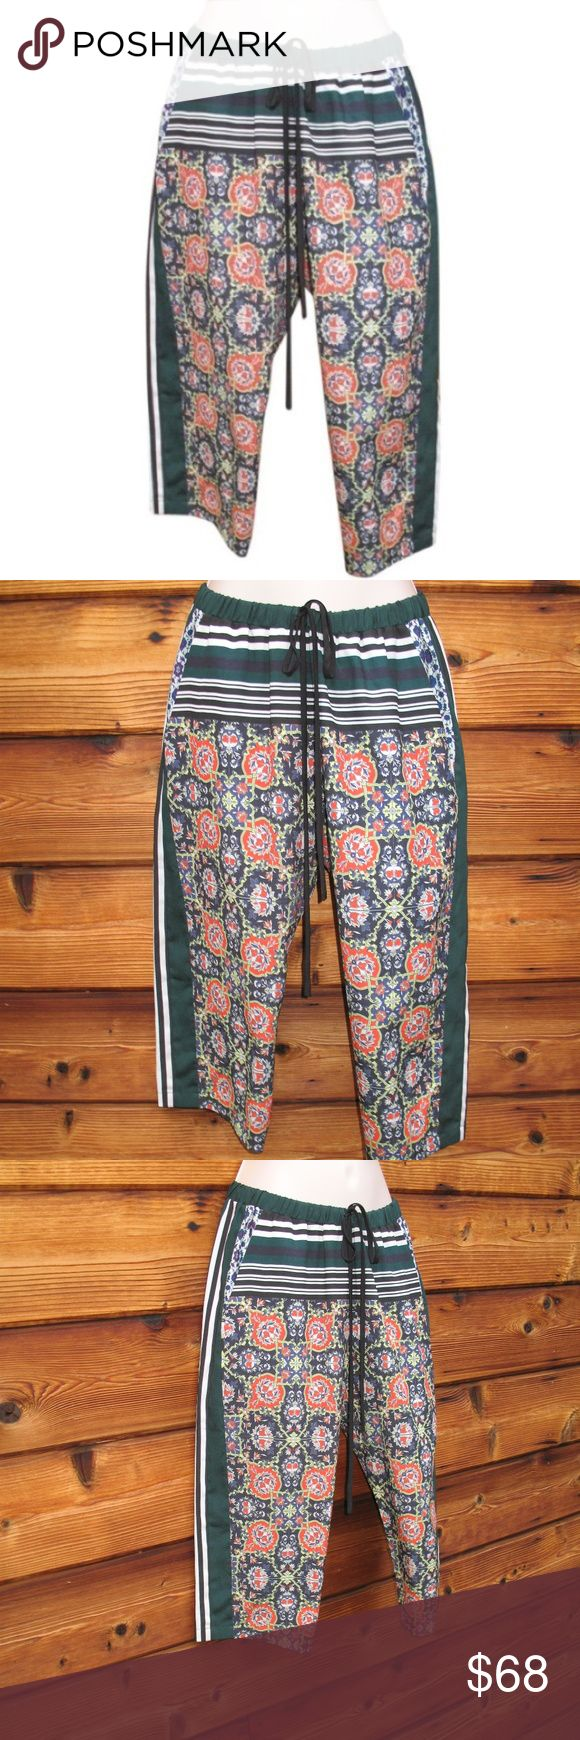 """Like New Clover Canyon Print Crop Capri Pants  M Clover Canyon Print Crops Pants   *Like-new  Details:  Clover Canyon  Size: M Color: Black/Multi  Pull-on style  Drawstring/elastic waist  100% Polyester   Measurements:  Waist: 28-38""""  Hips: 42""""  Inseam: 18 Clover Canyon Pants Capris"""